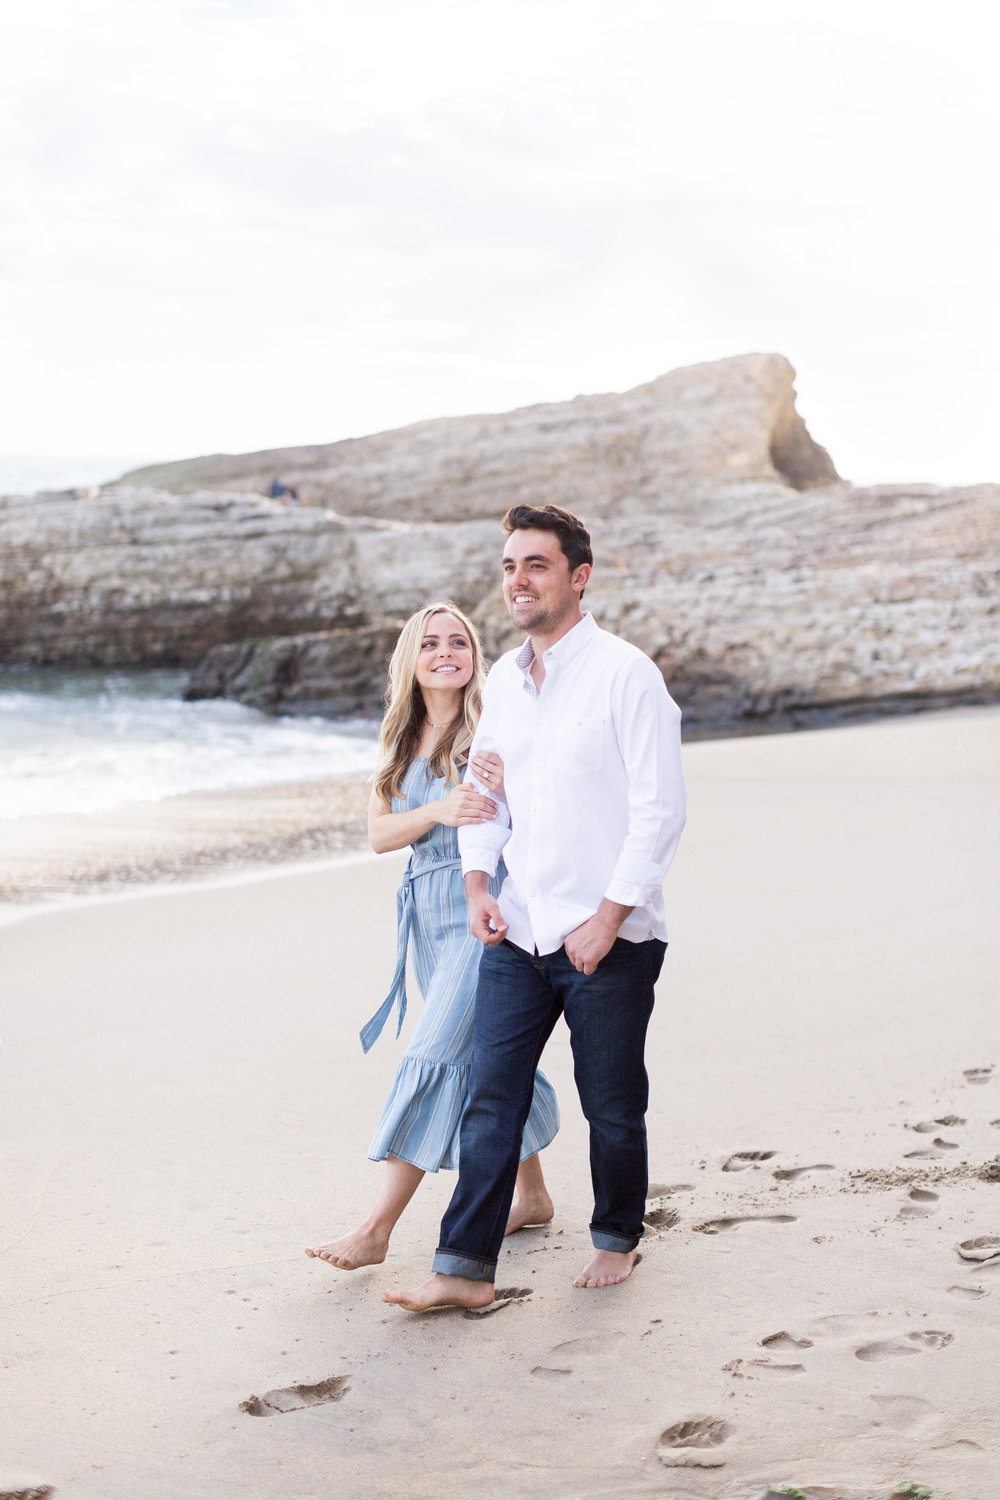 panther-beach-santa-cruz-engagement-session-photographer-45.jpg